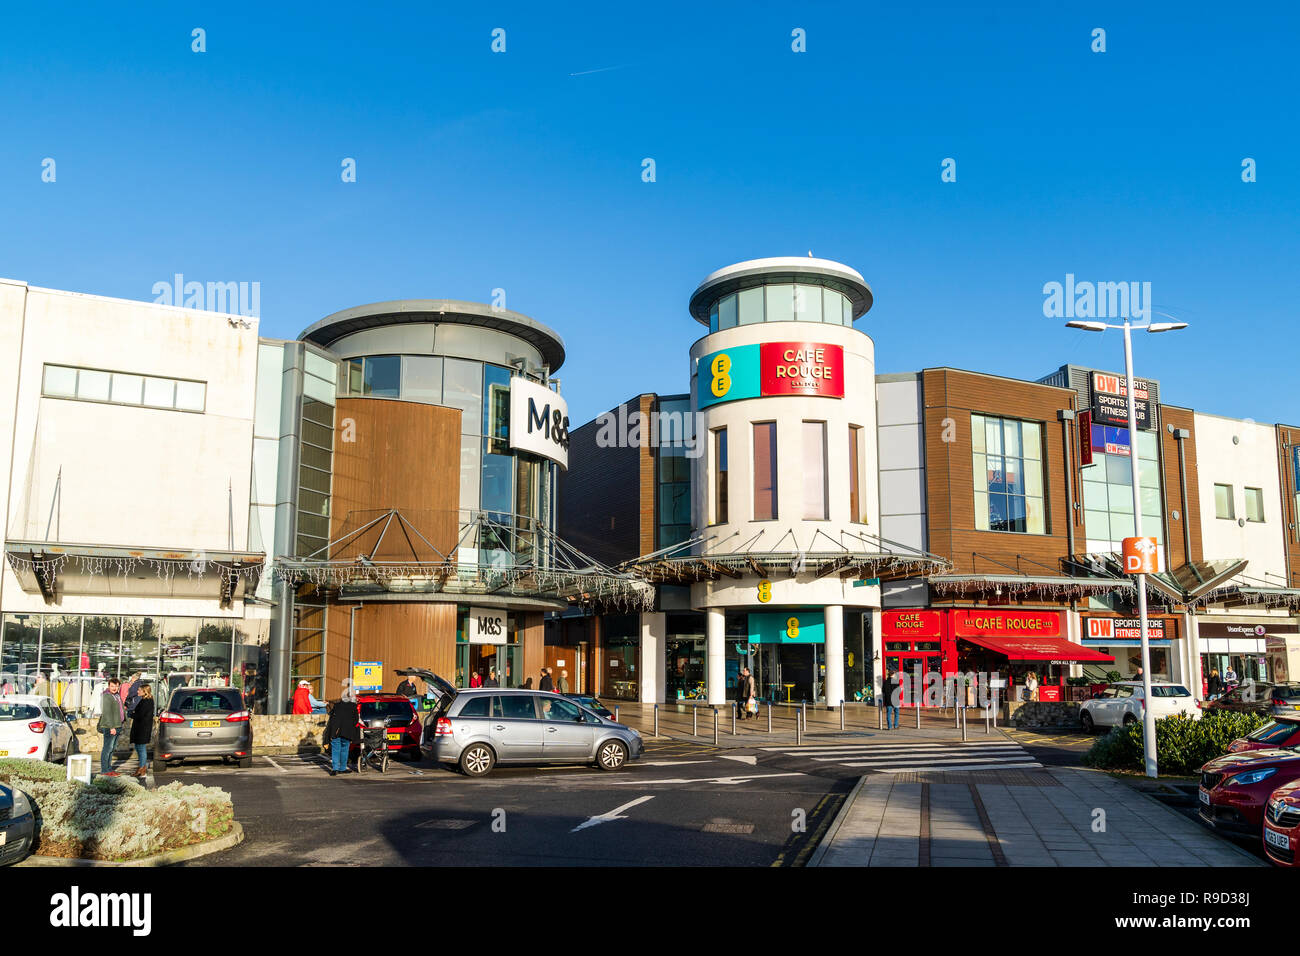 Westwood Cross shopping centre, England. Car park with M&S store entrance, Cafe Rouge and DW sports and fitness club entrance. Super Saturday. - Stock Image